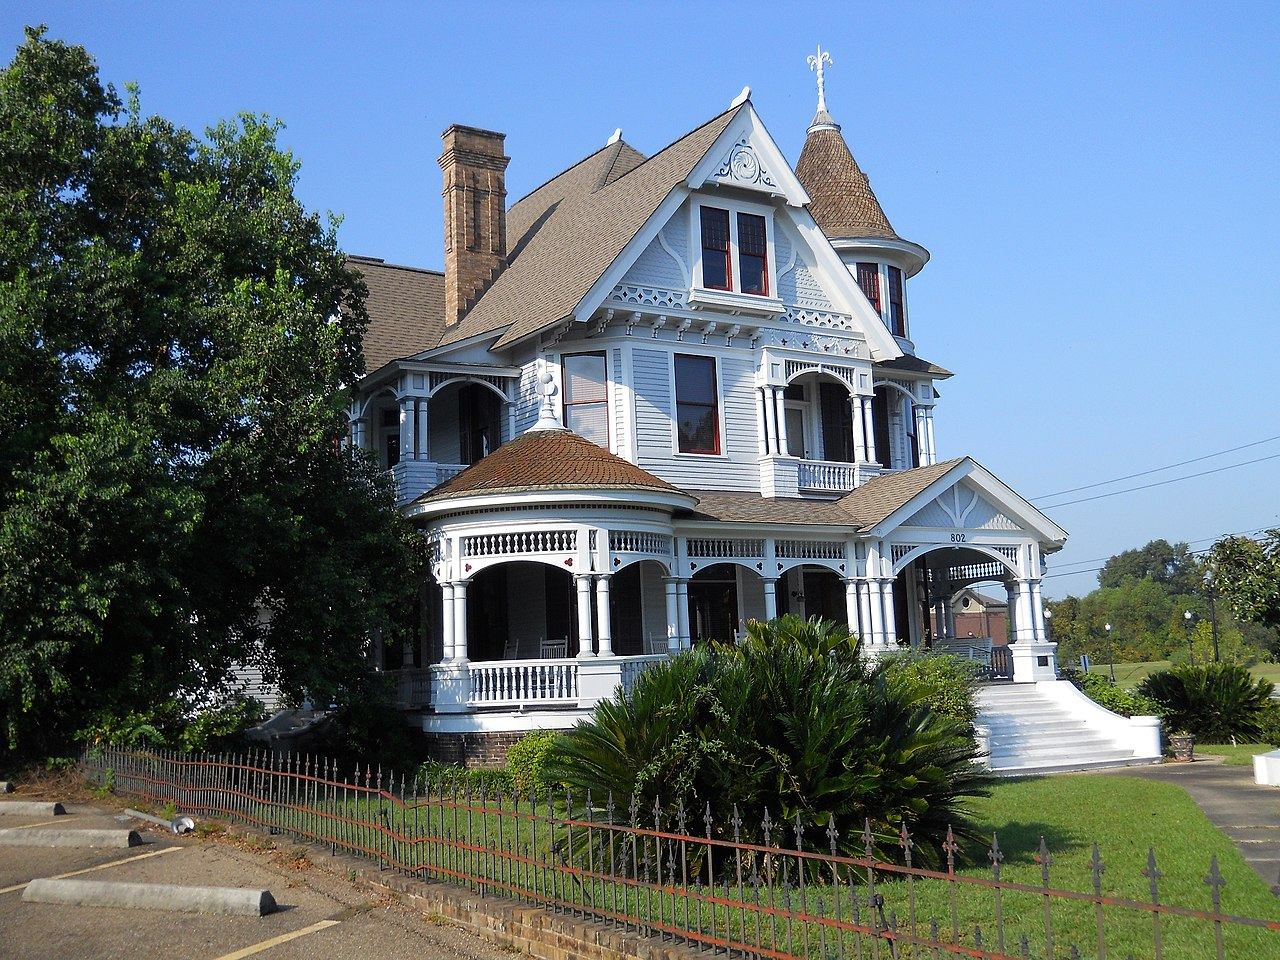 File:McLeodHouse (Hattiesburg, MS).jpg - Wikimedia Commons